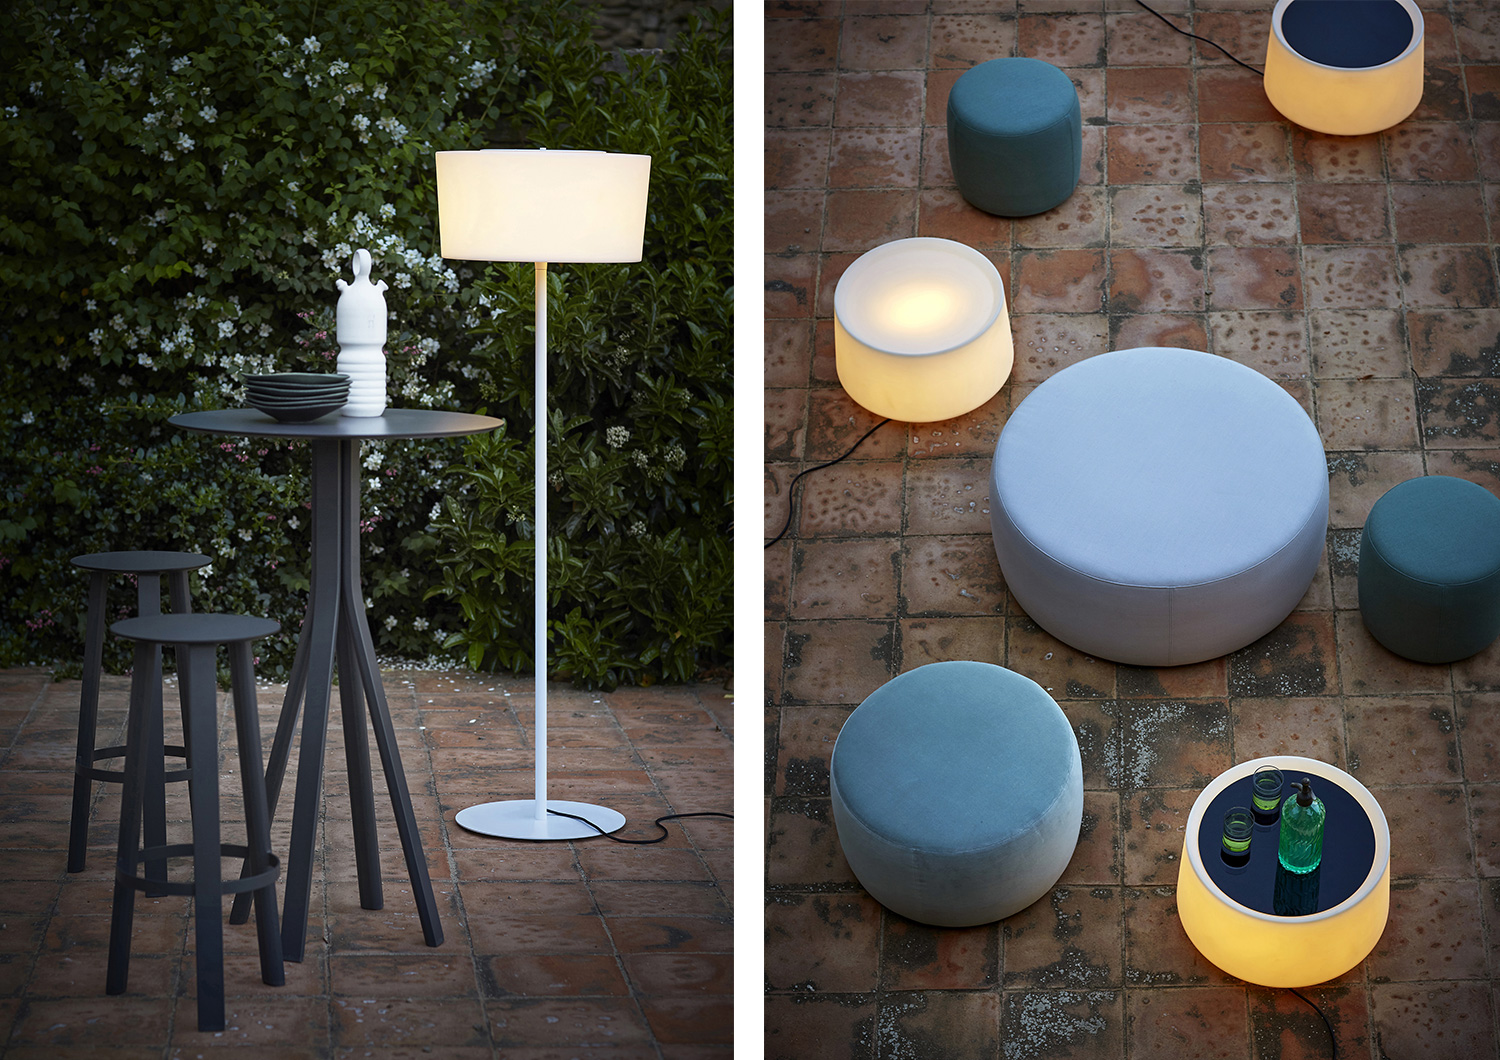 Outdoor Decorative Lamps Gallery 03